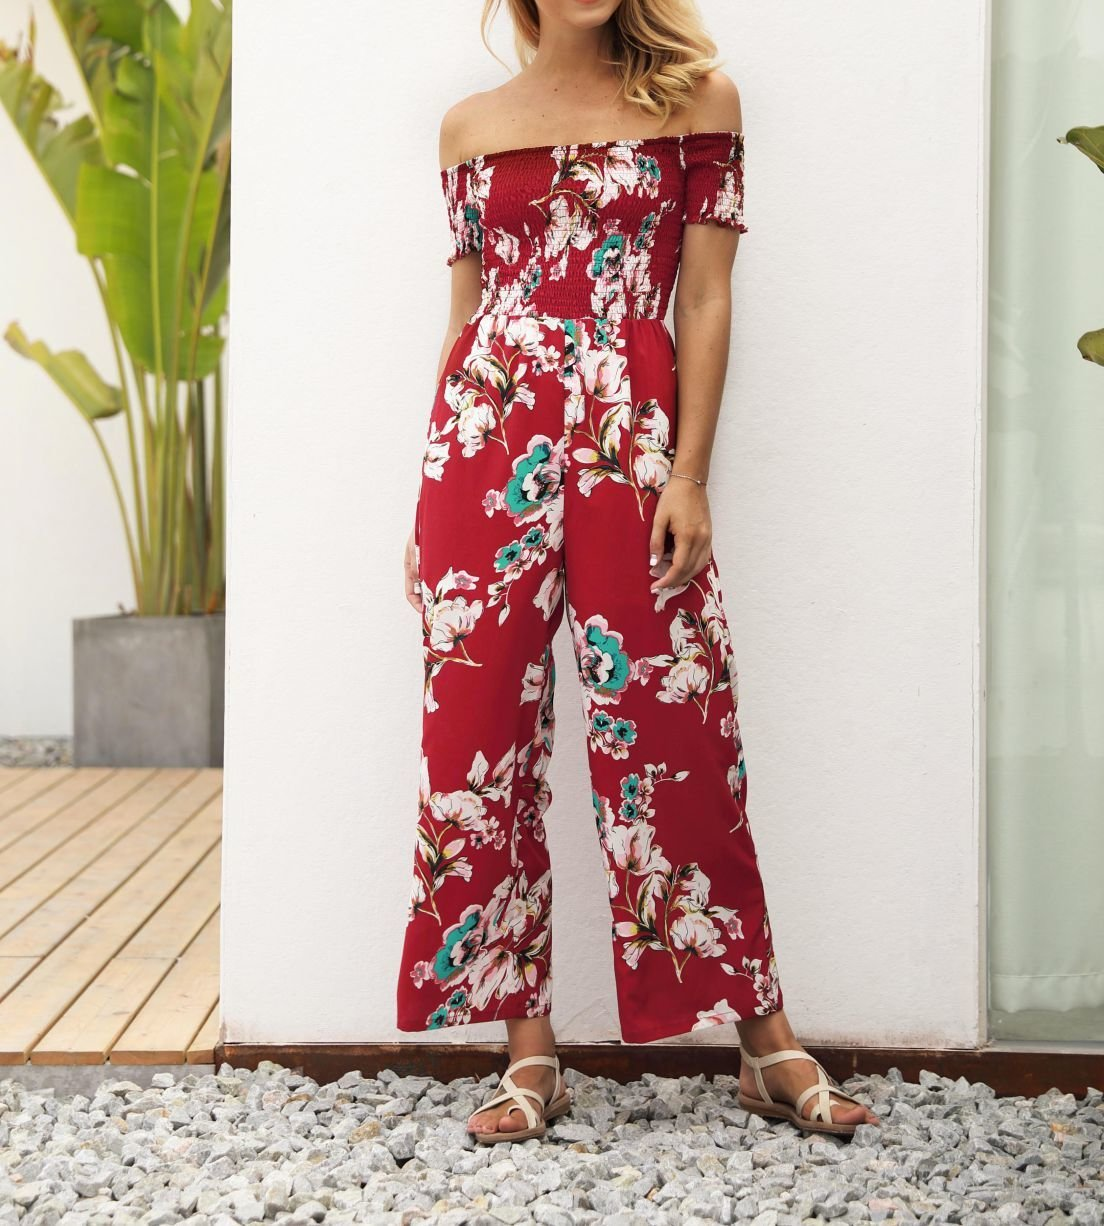 Floral Pant Dress with Smocked Stretch Top